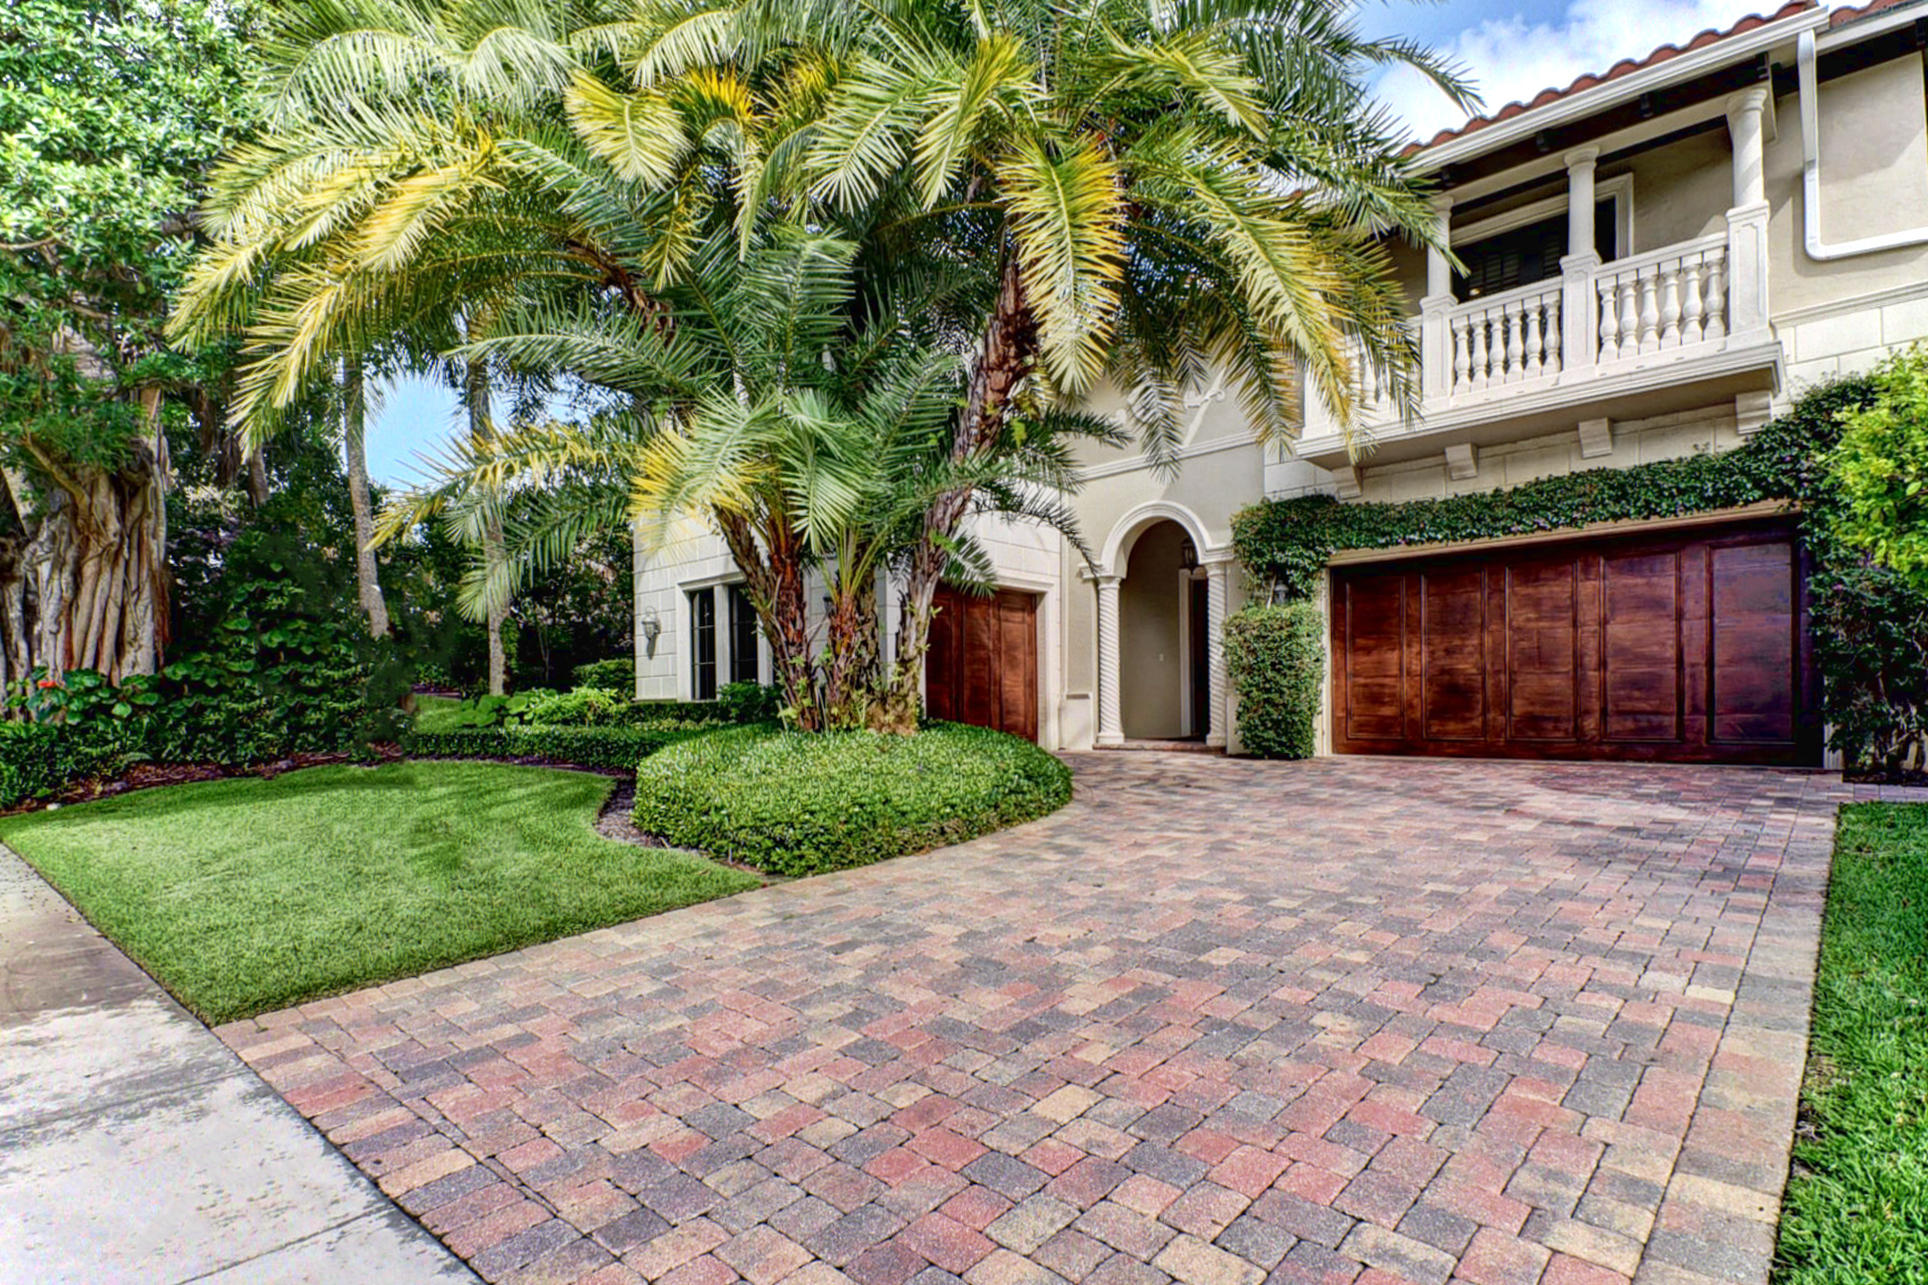 130 Spanish Trail Trail, Boca Raton, Florida 33432, 4 Bedrooms Bedrooms, ,5 BathroomsBathrooms,Residential,For Sale,Spanish Trail,RX-10595833